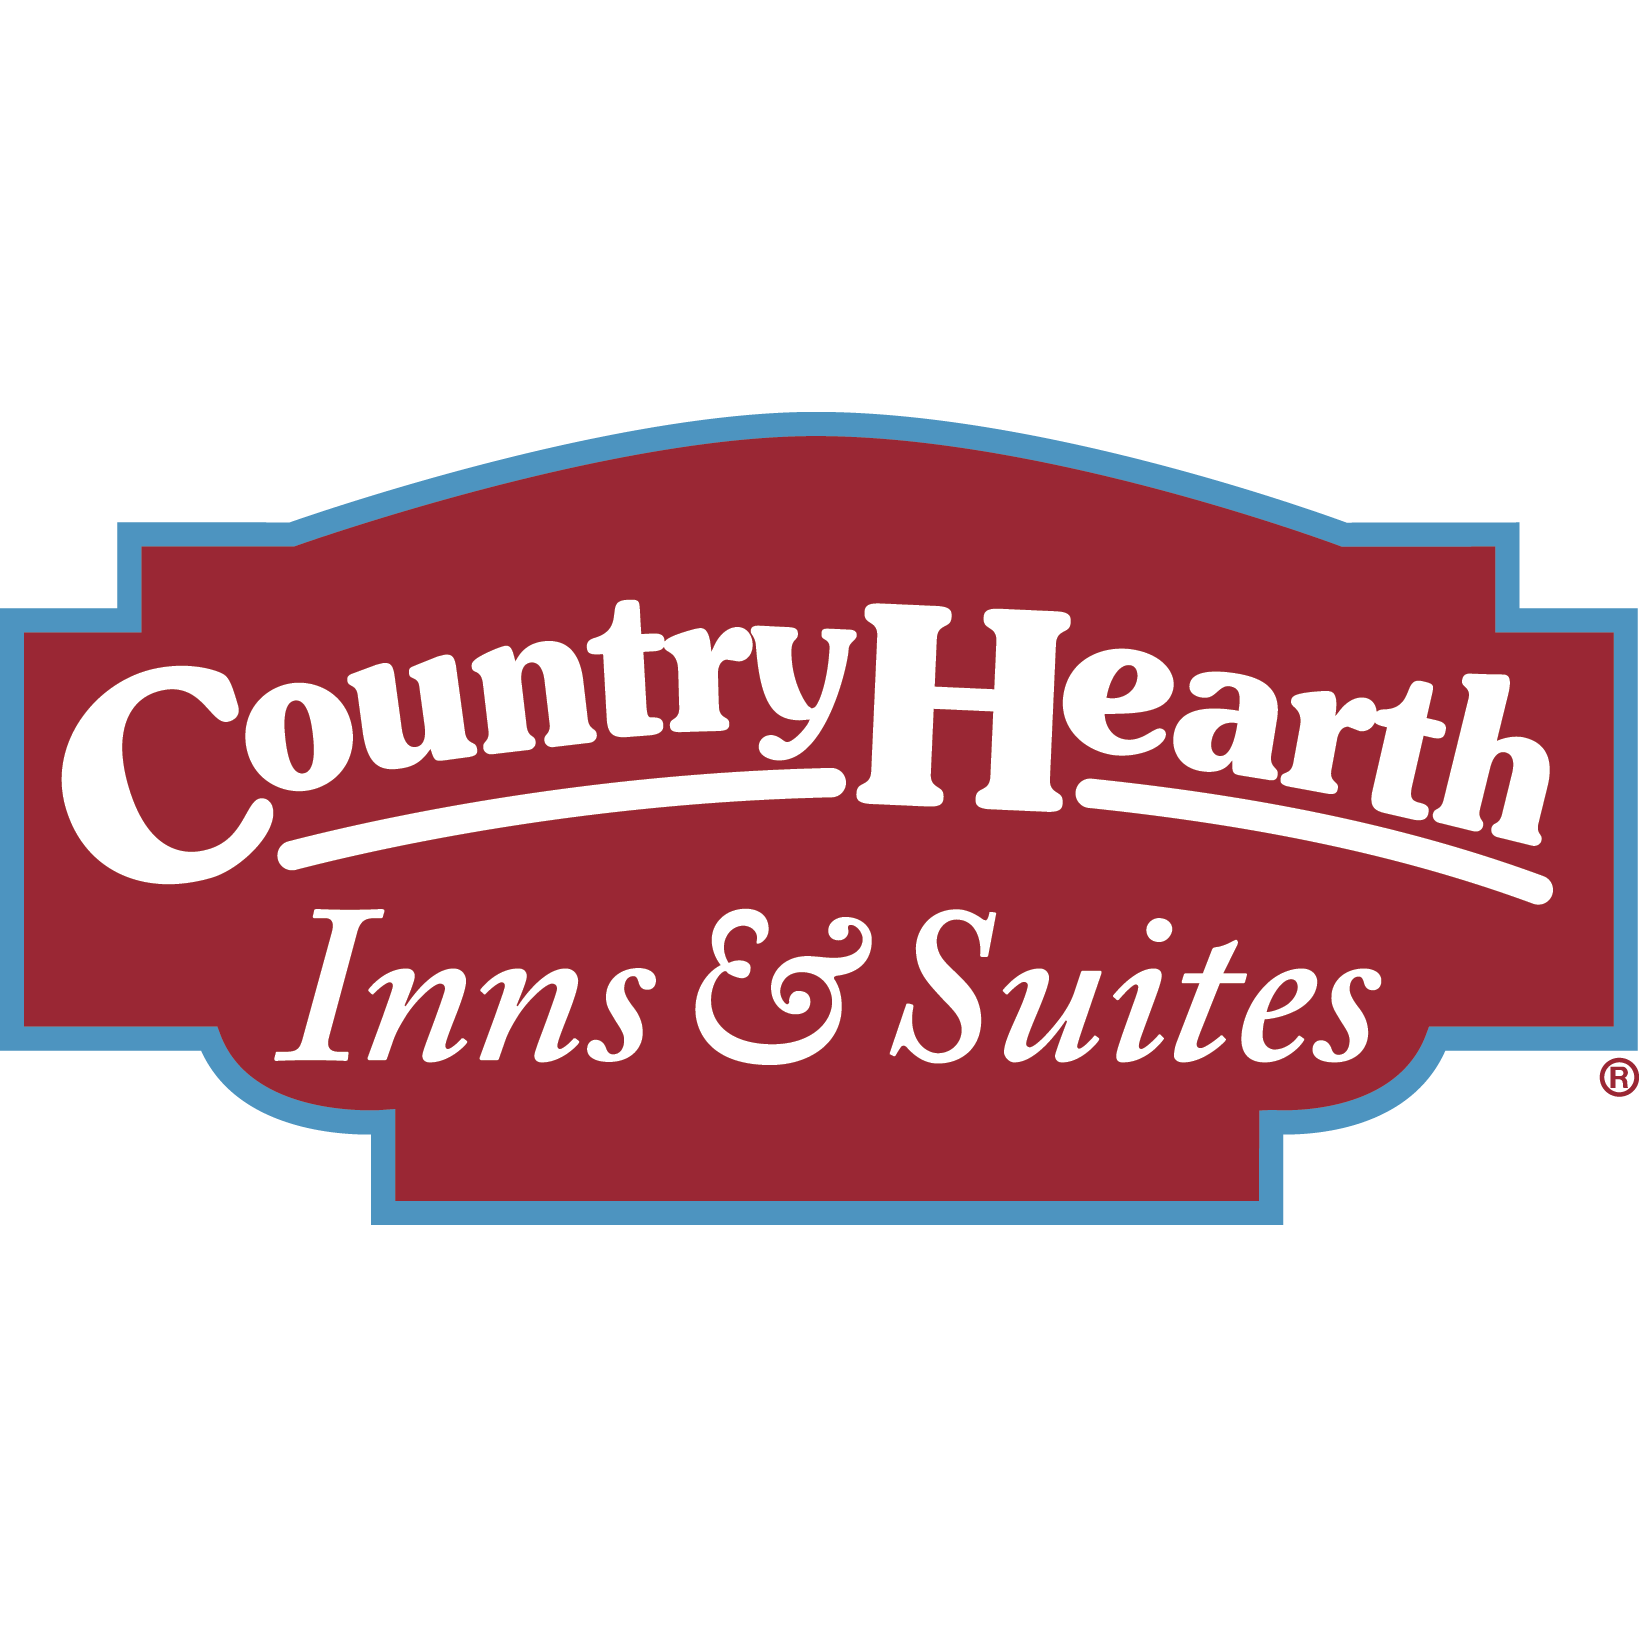 Hotel in MI Sturgis 49091 Country Hearth Inn & Suites - Sturgis 1730 S. Centerville Rd  (269)651-8505